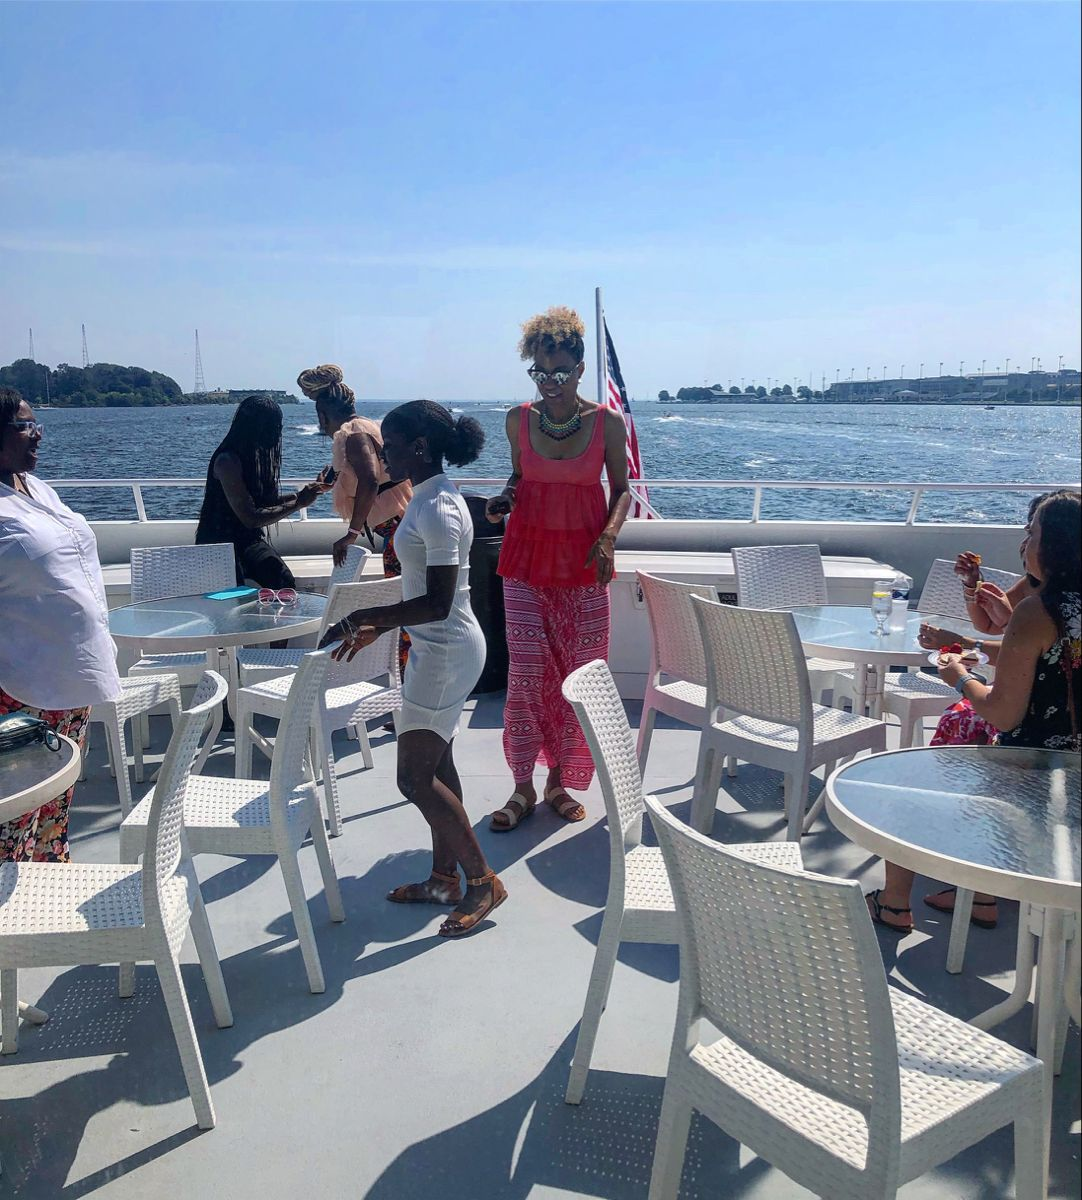 Click this picture to learn more about annapolis maryland